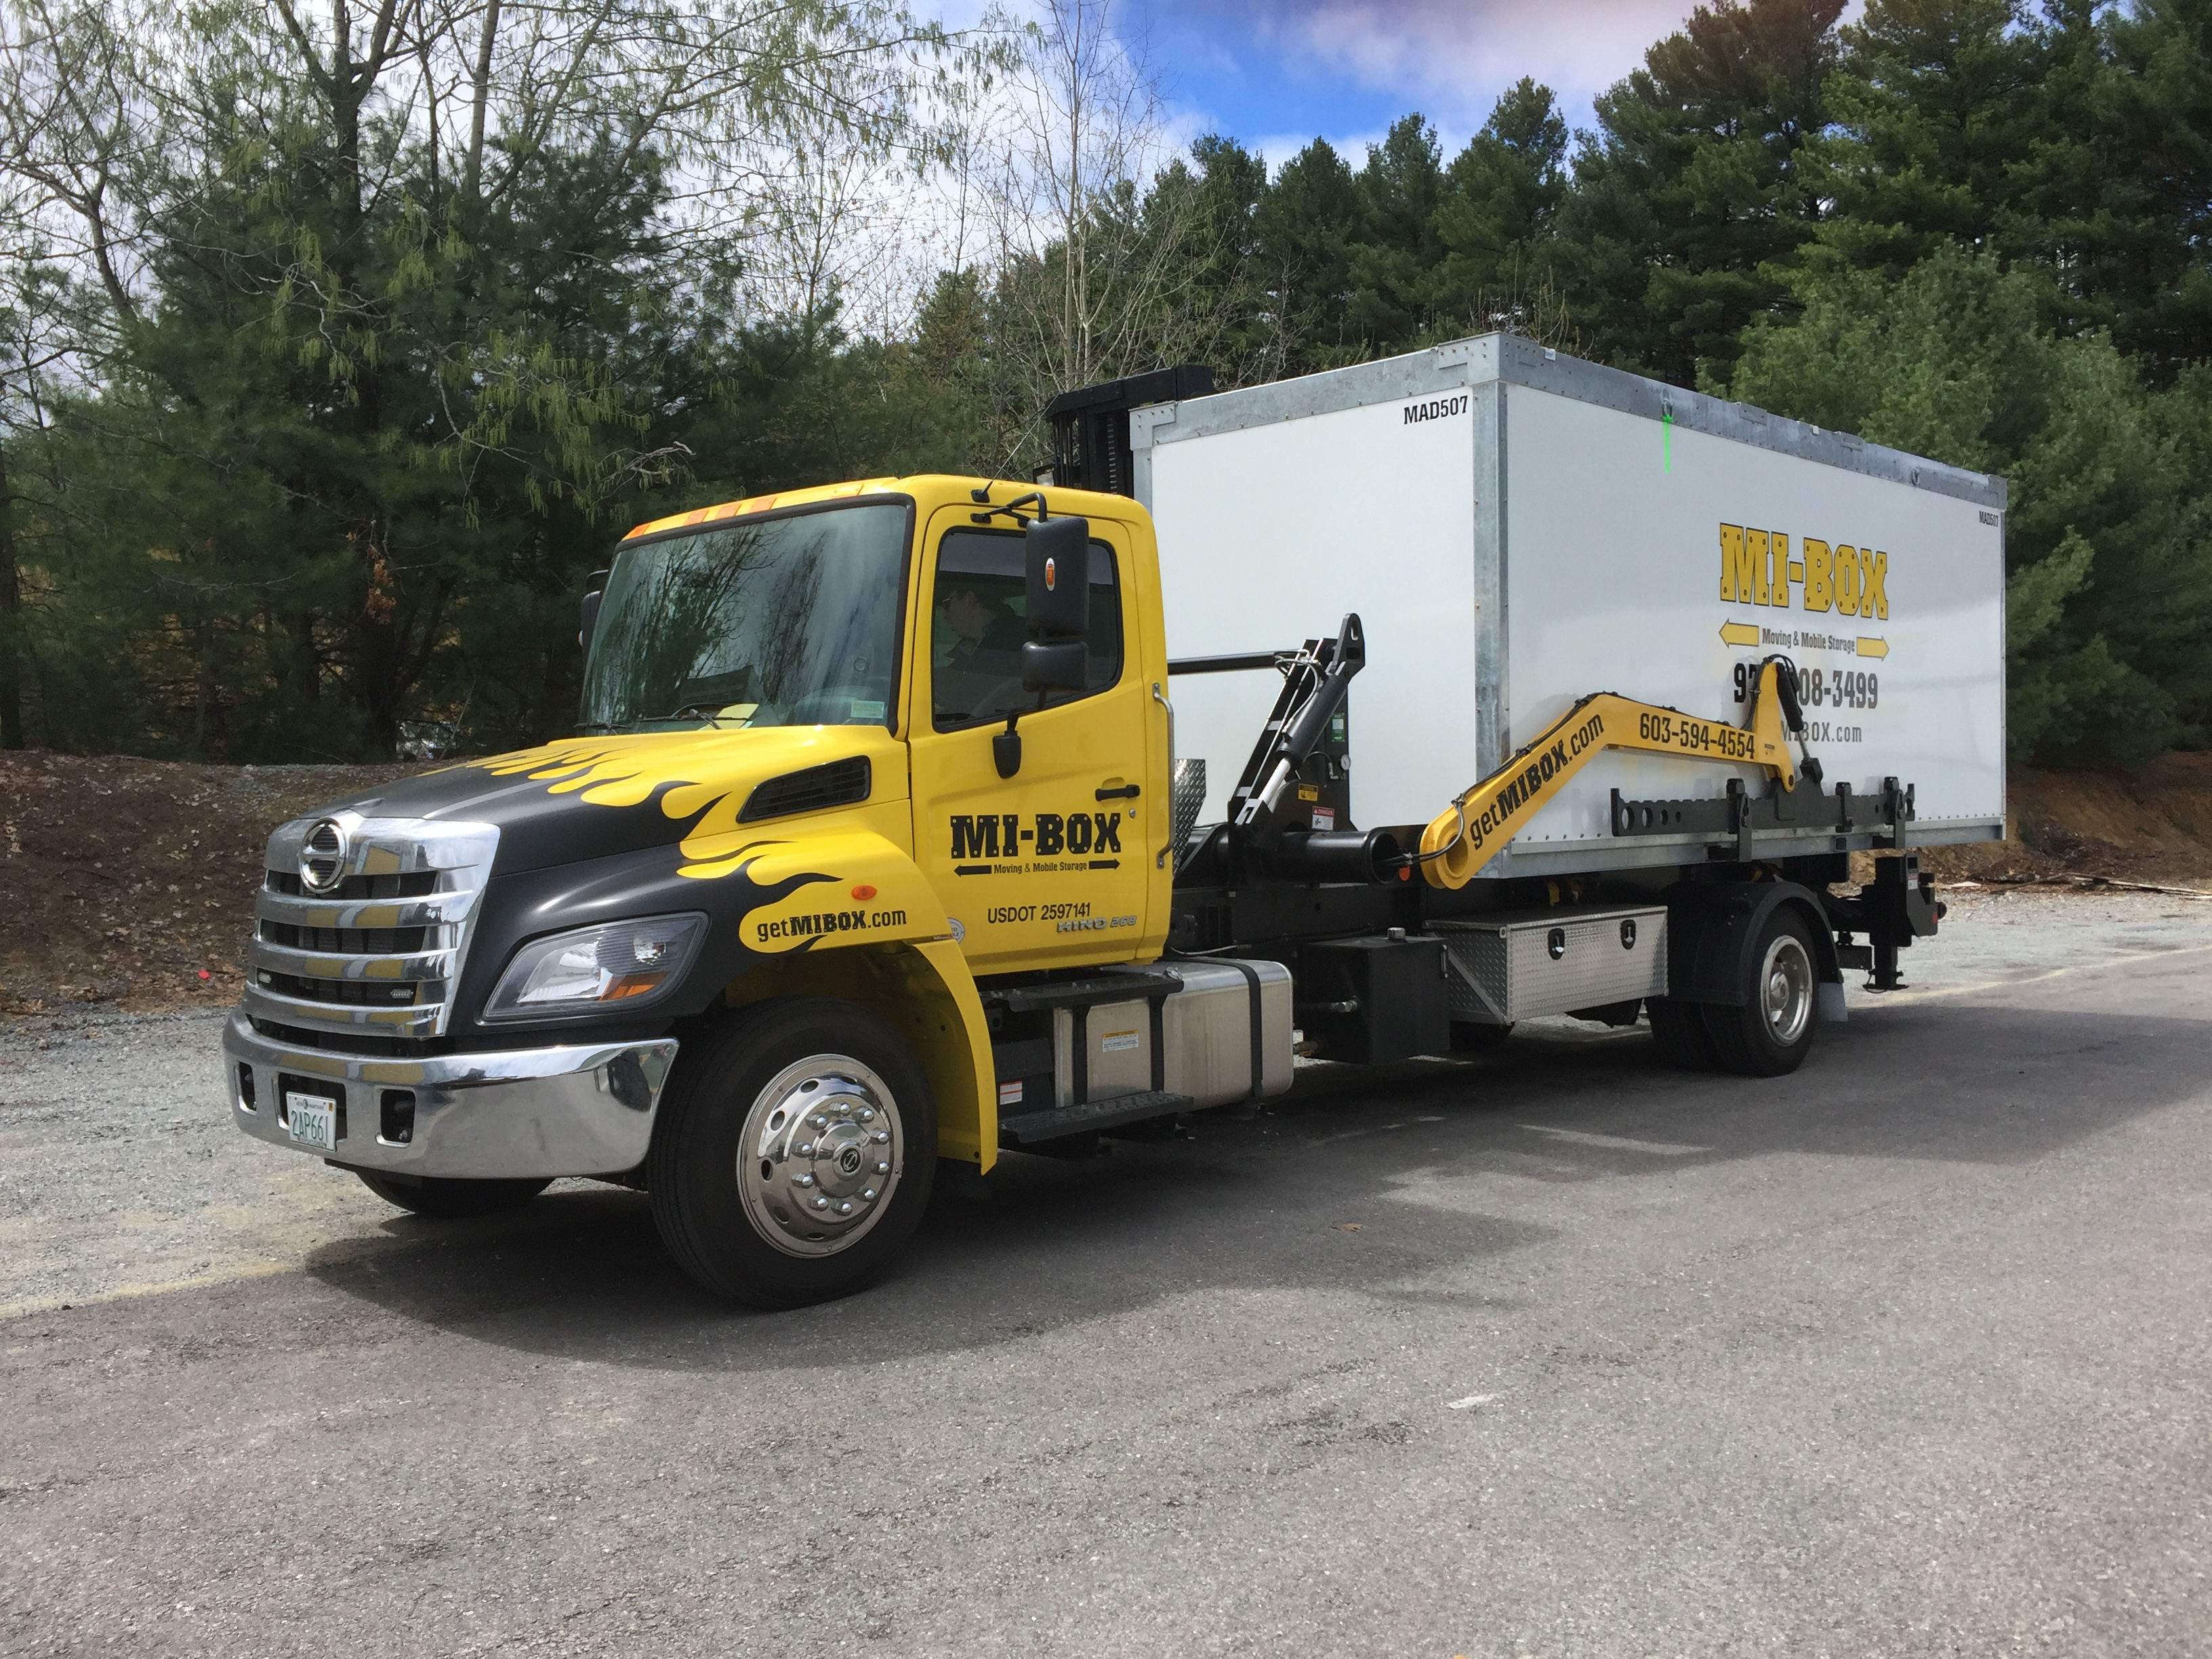 MI-BOX Mobile Storage & Moving Greater Billerica & Burlington